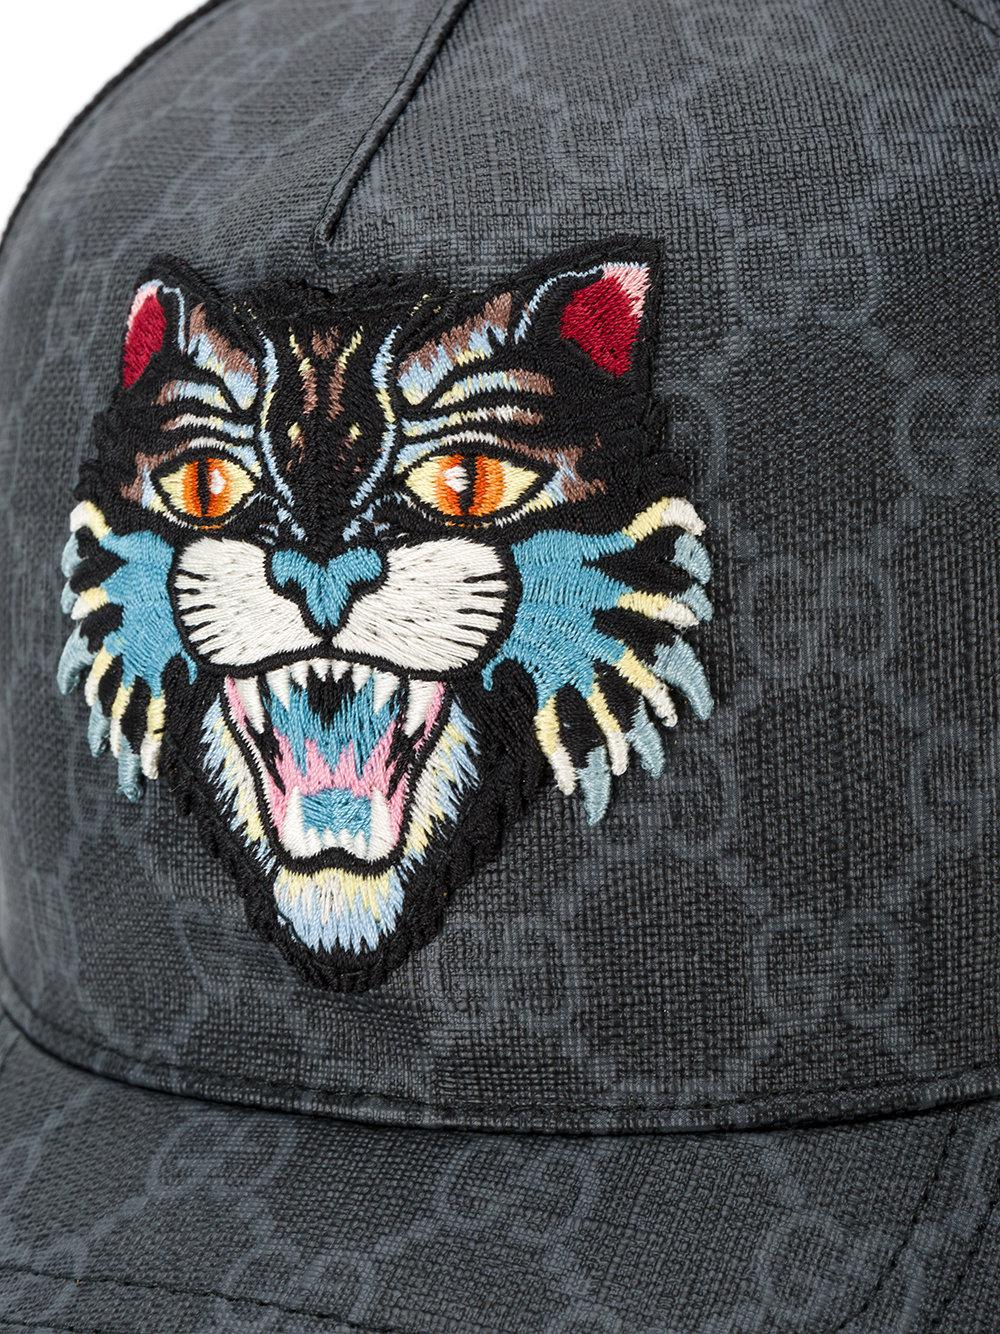 162e9653ca85a0 Gucci Gg Supreme Angry Cat Baseball Cap in Black for Men - Lyst